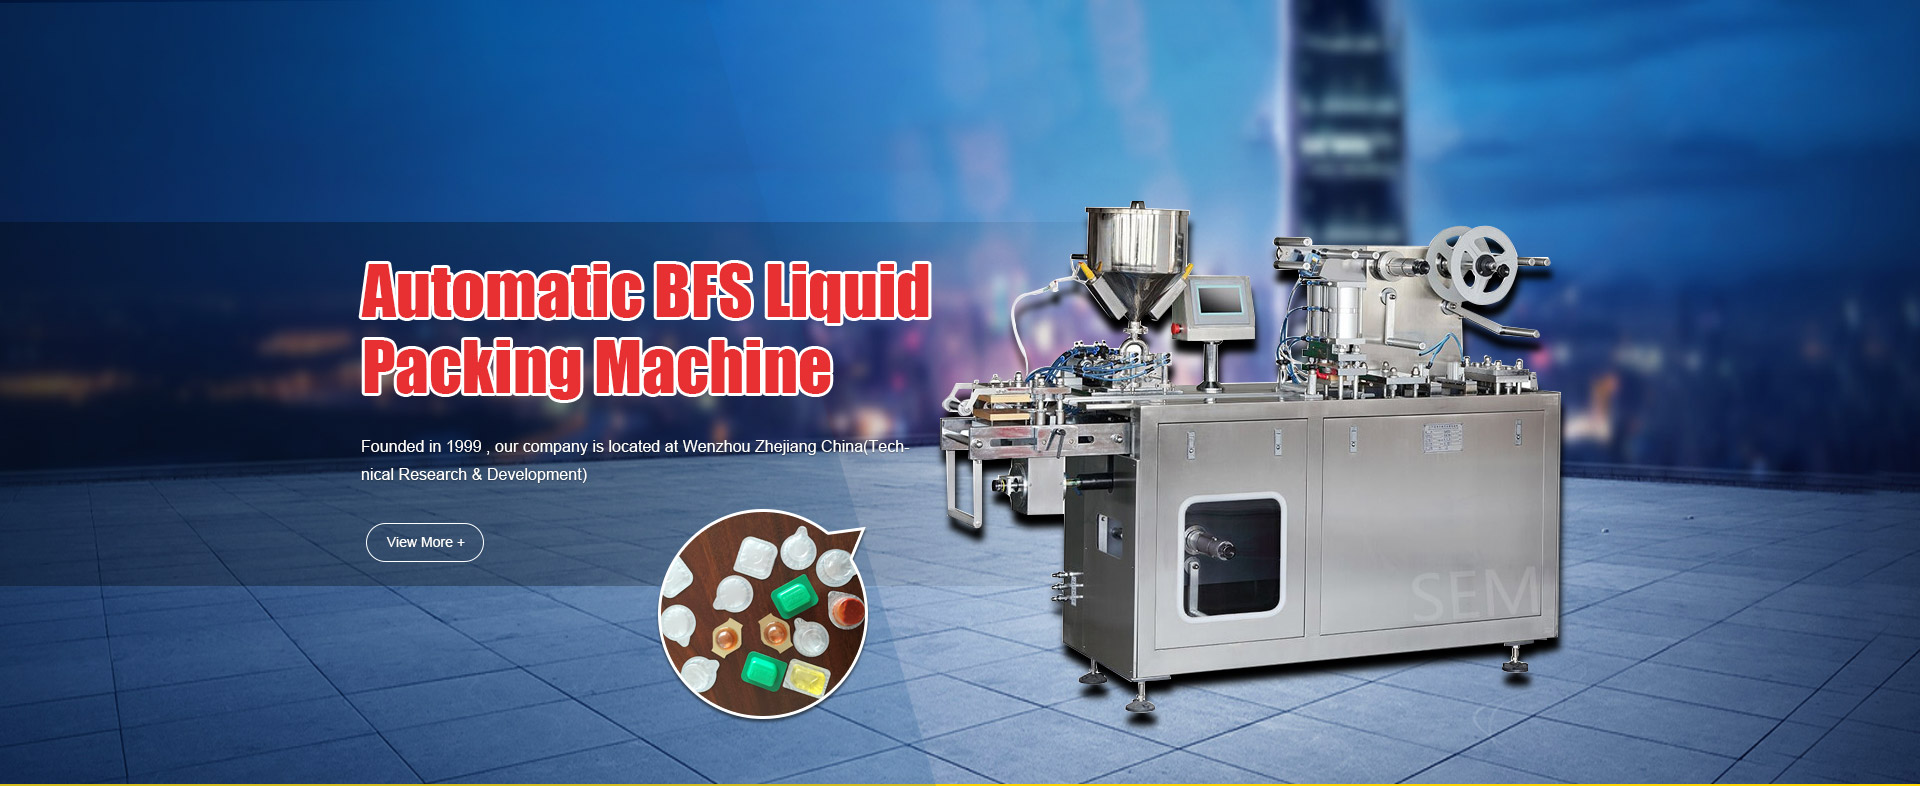 Automatic BFS Liquid Packing Machine